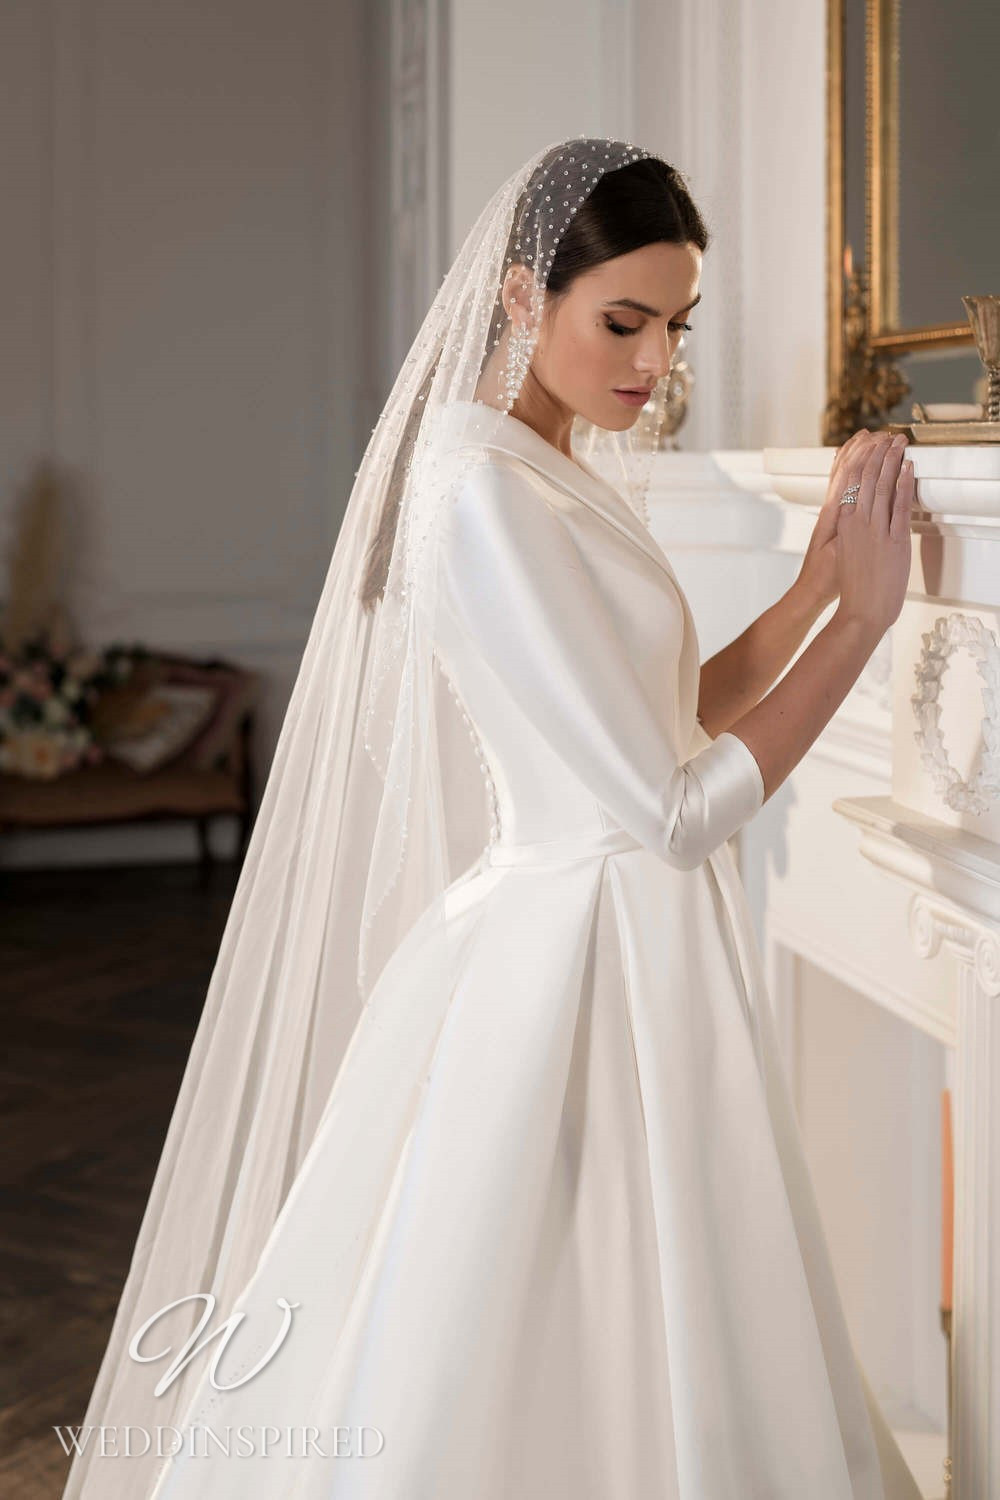 A Lussano 2021 satin A-line wedding dress with half sleeves